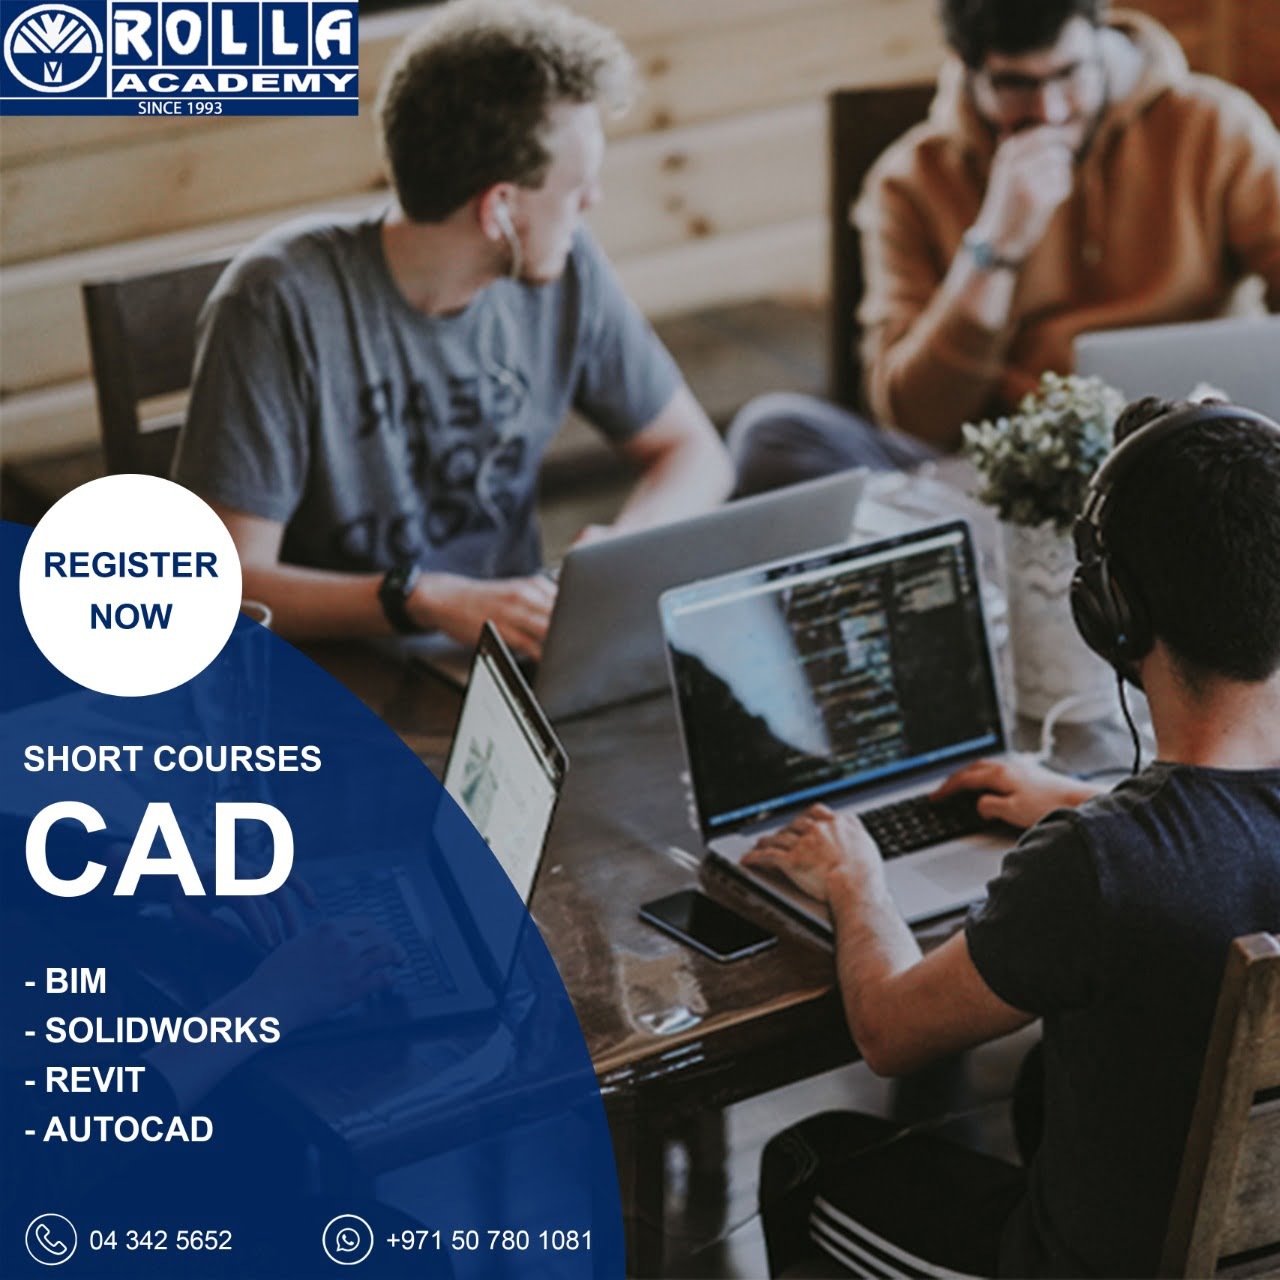 CAD Short Courses Offer